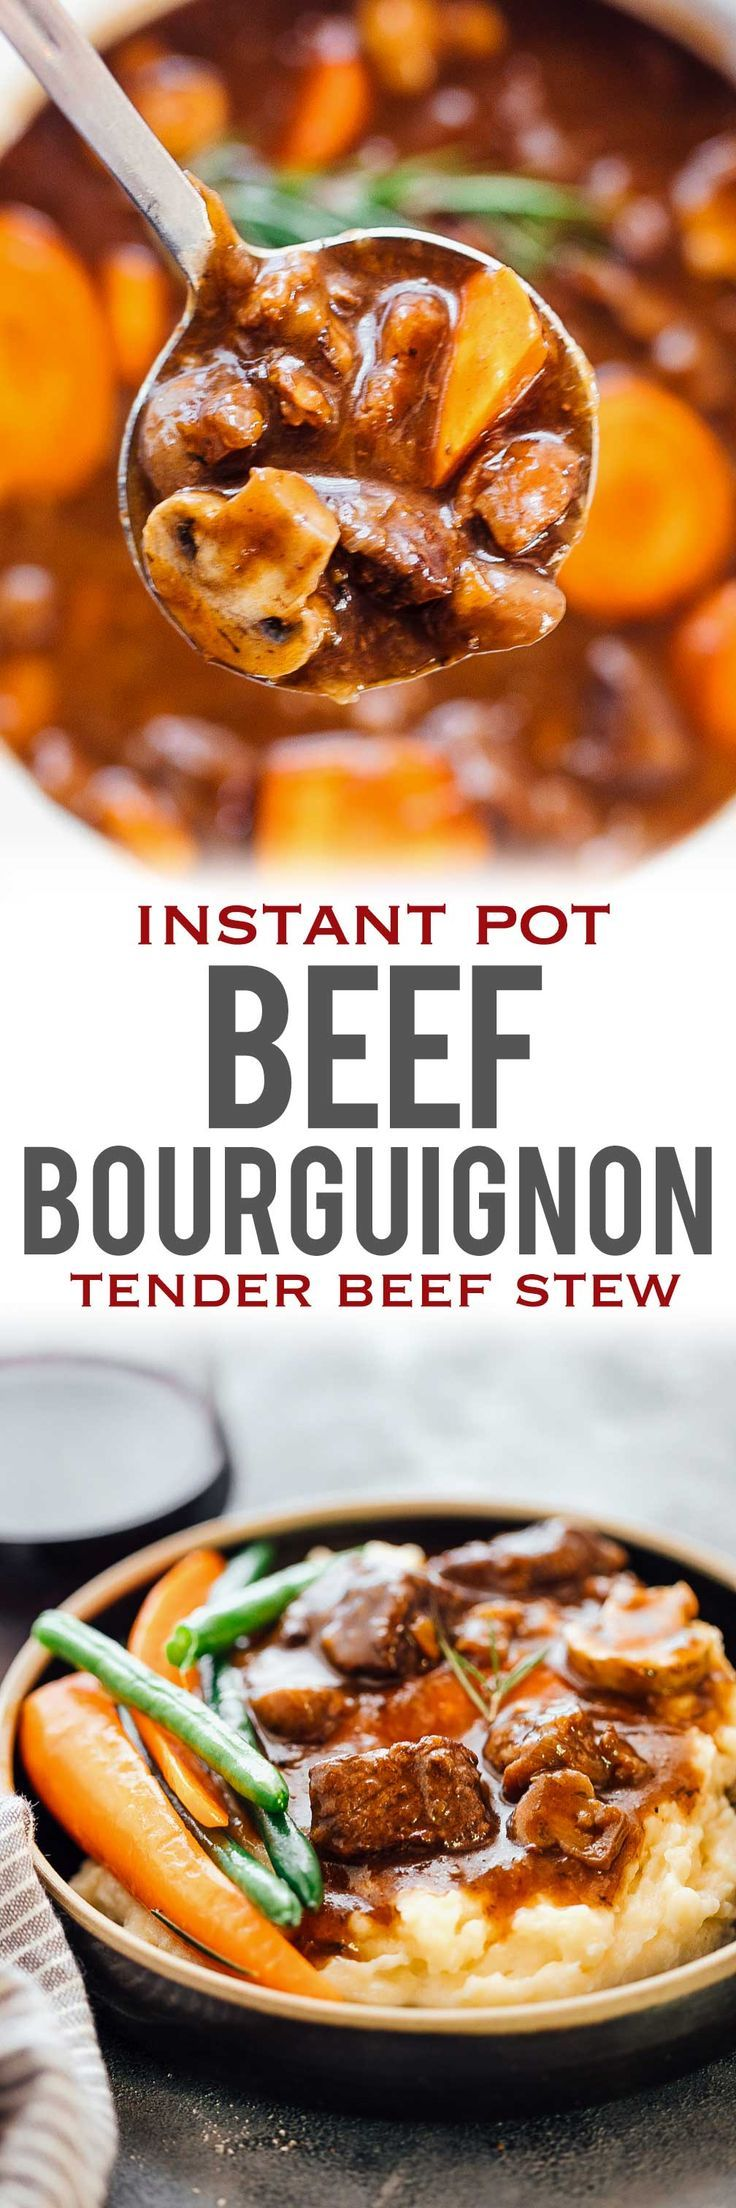 This INSTANT POT BEEF BOURGUIGNON has all the right flavours is inspired by Julia Child's beef stew with red wine and has tender, fall apart beef chunks. This is a french recipe that's easy, and tastes best with sides like mashed potatoes, roasted potatoes and beans. Use the Instant Pot to cut down the cooking time by half, but keep all the flavours intact. via @my_foodstory